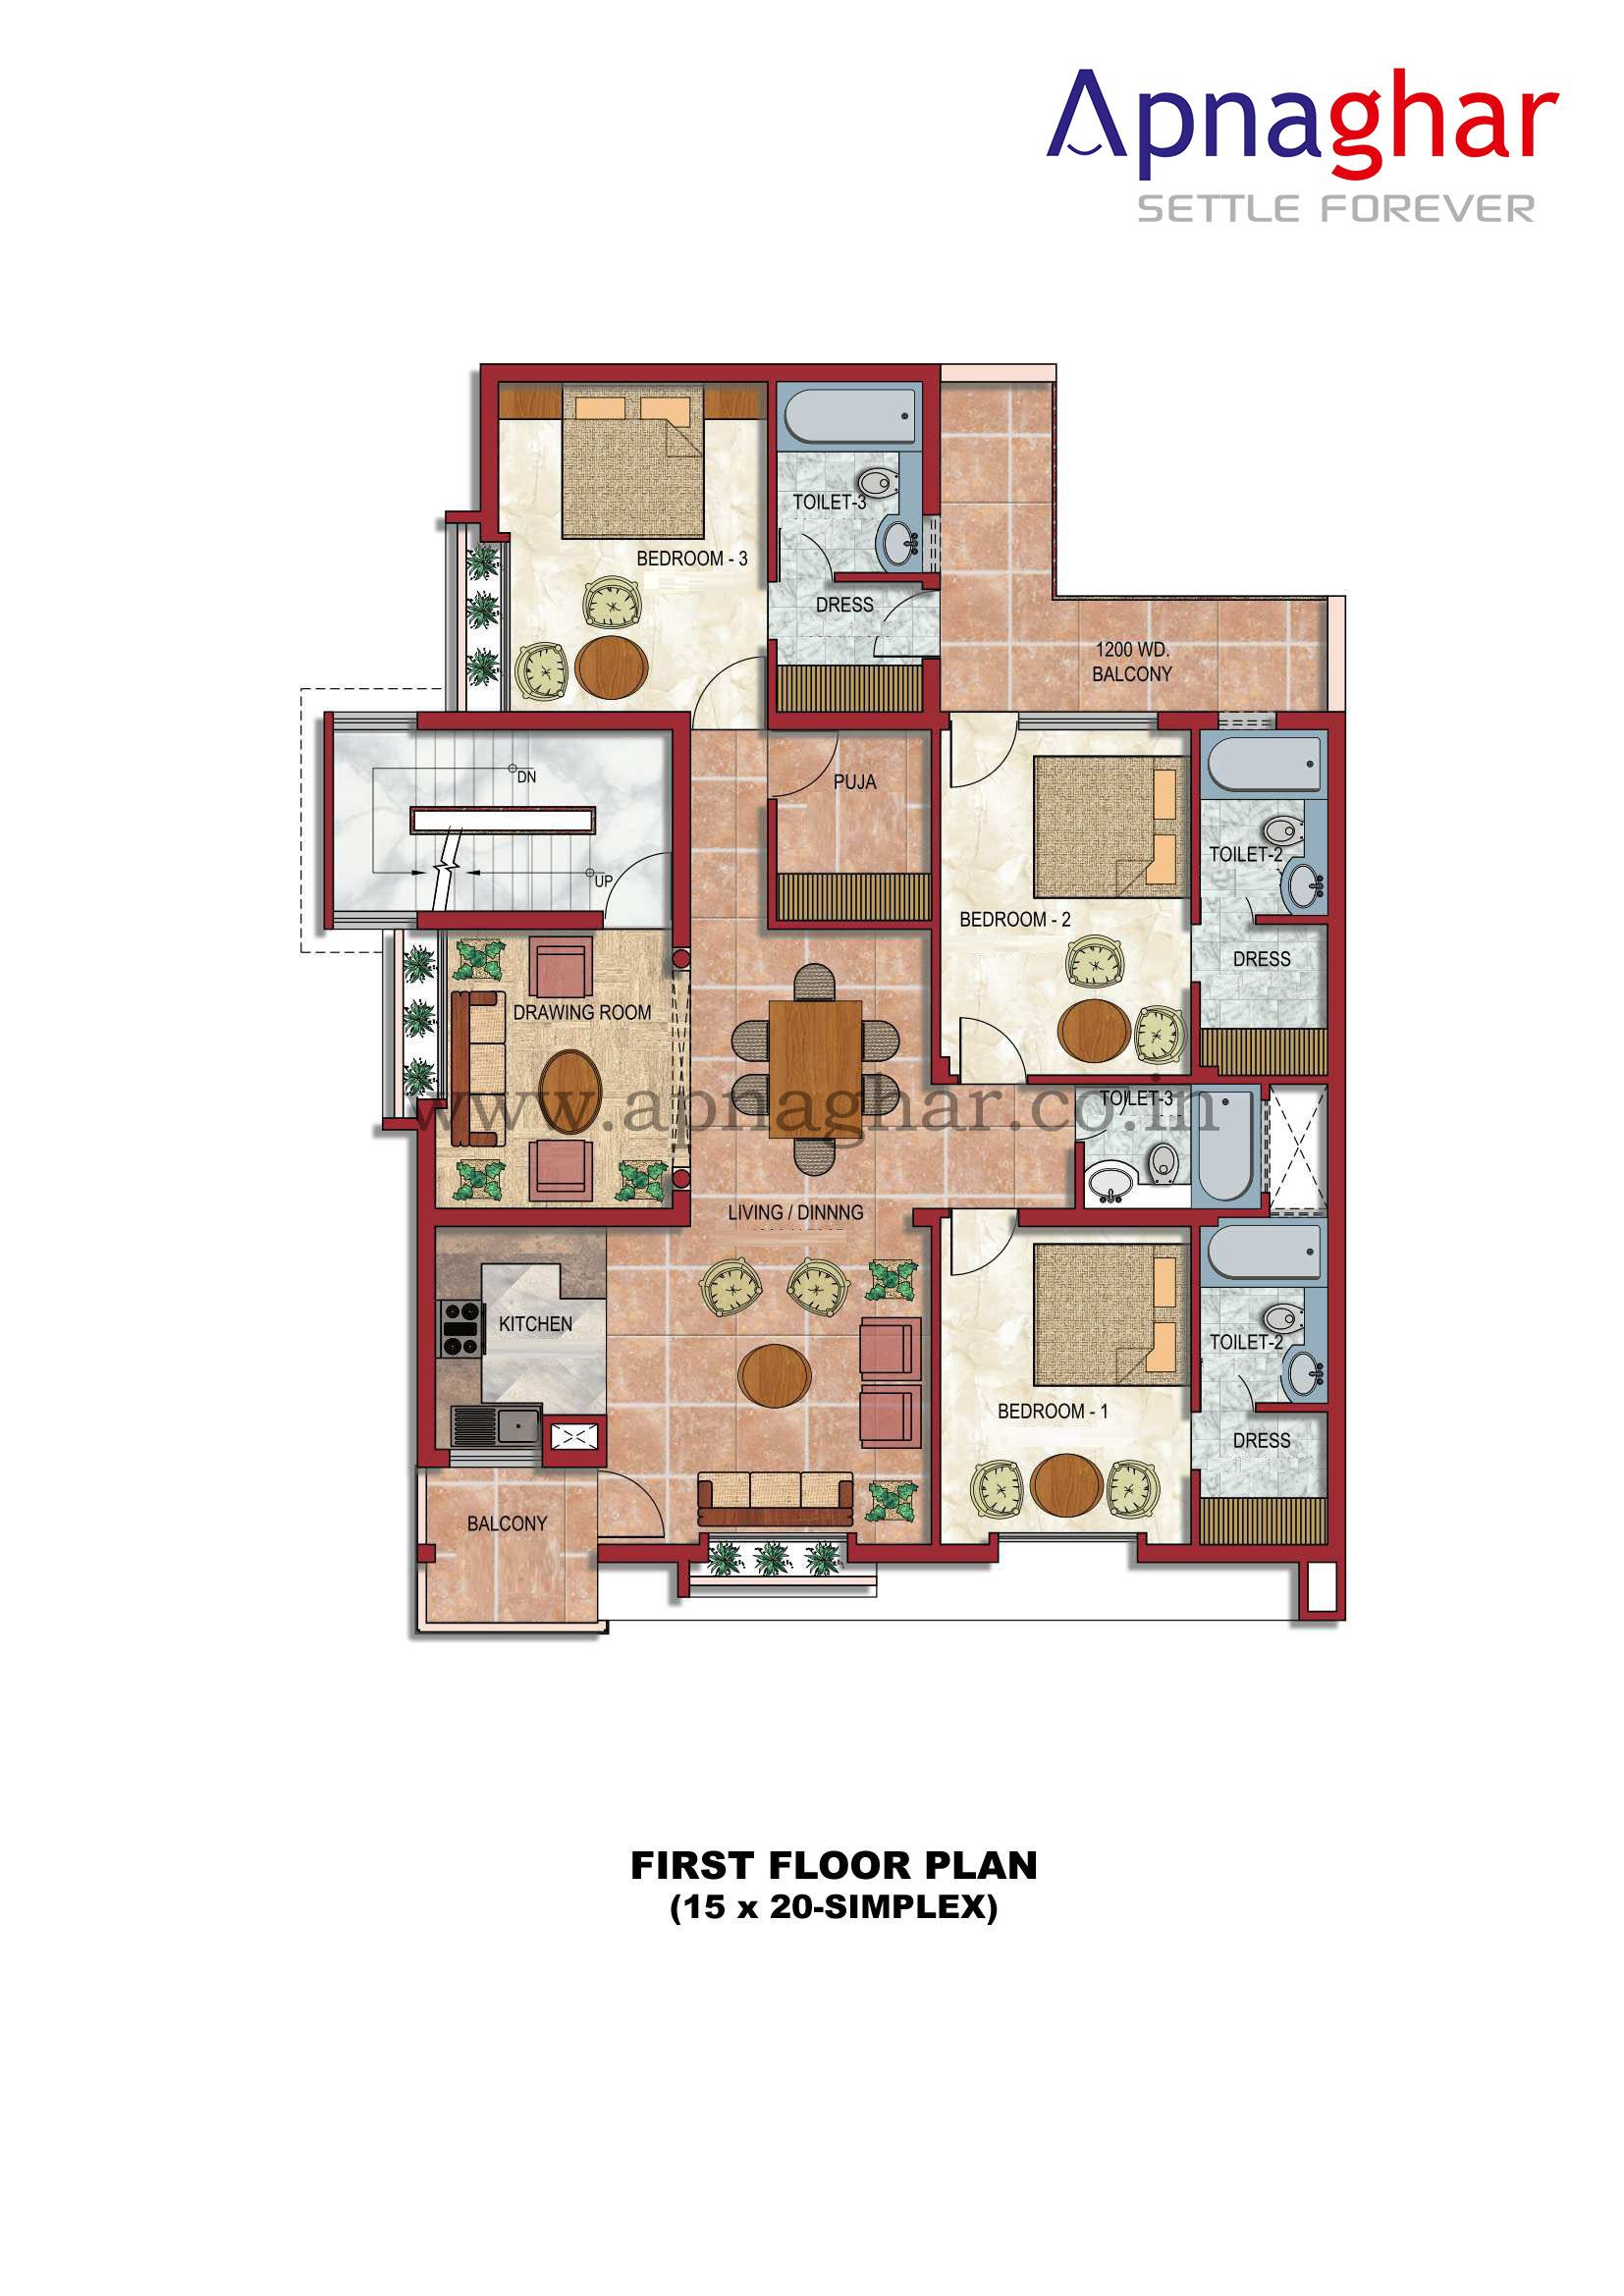 Get Floor Plan For All The Floors Of Your House Designed By Expert Architects